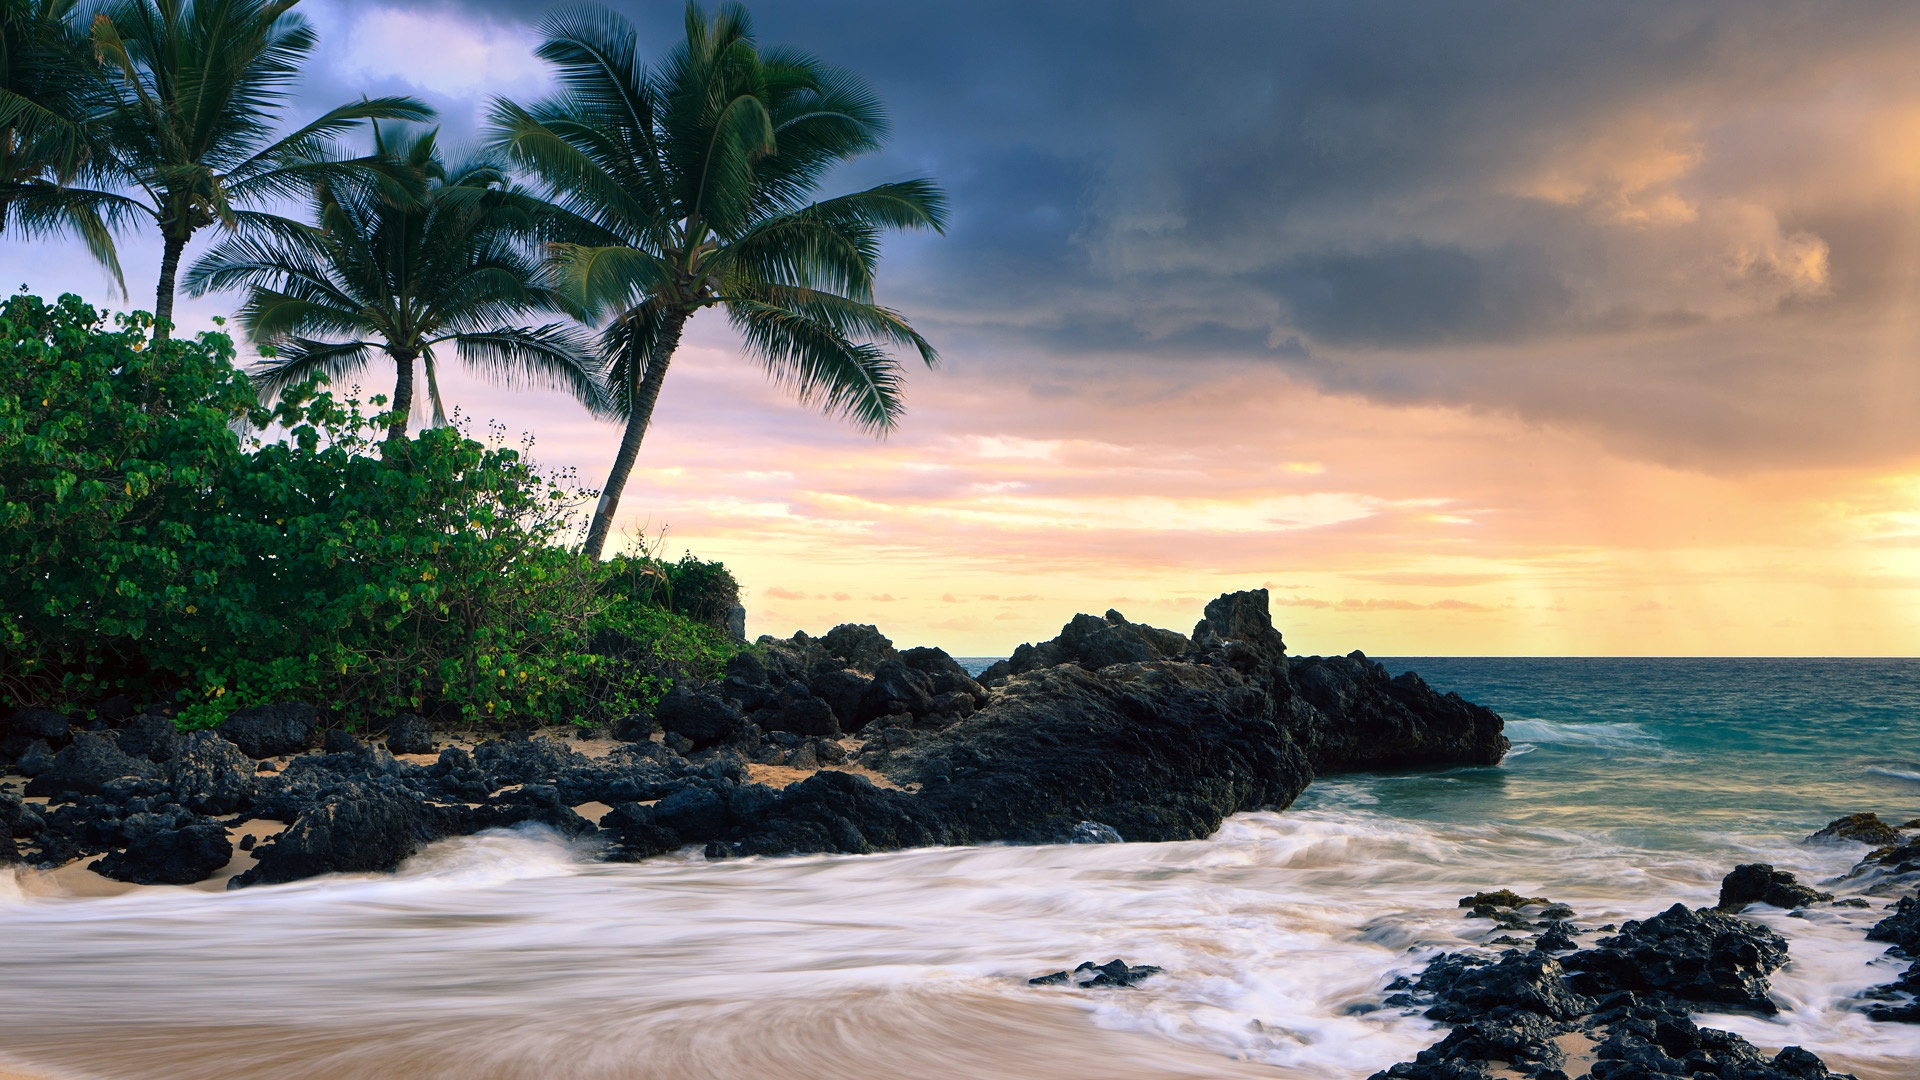 Tropical Islands HD Wallpaper New Tab Theme World of Travel